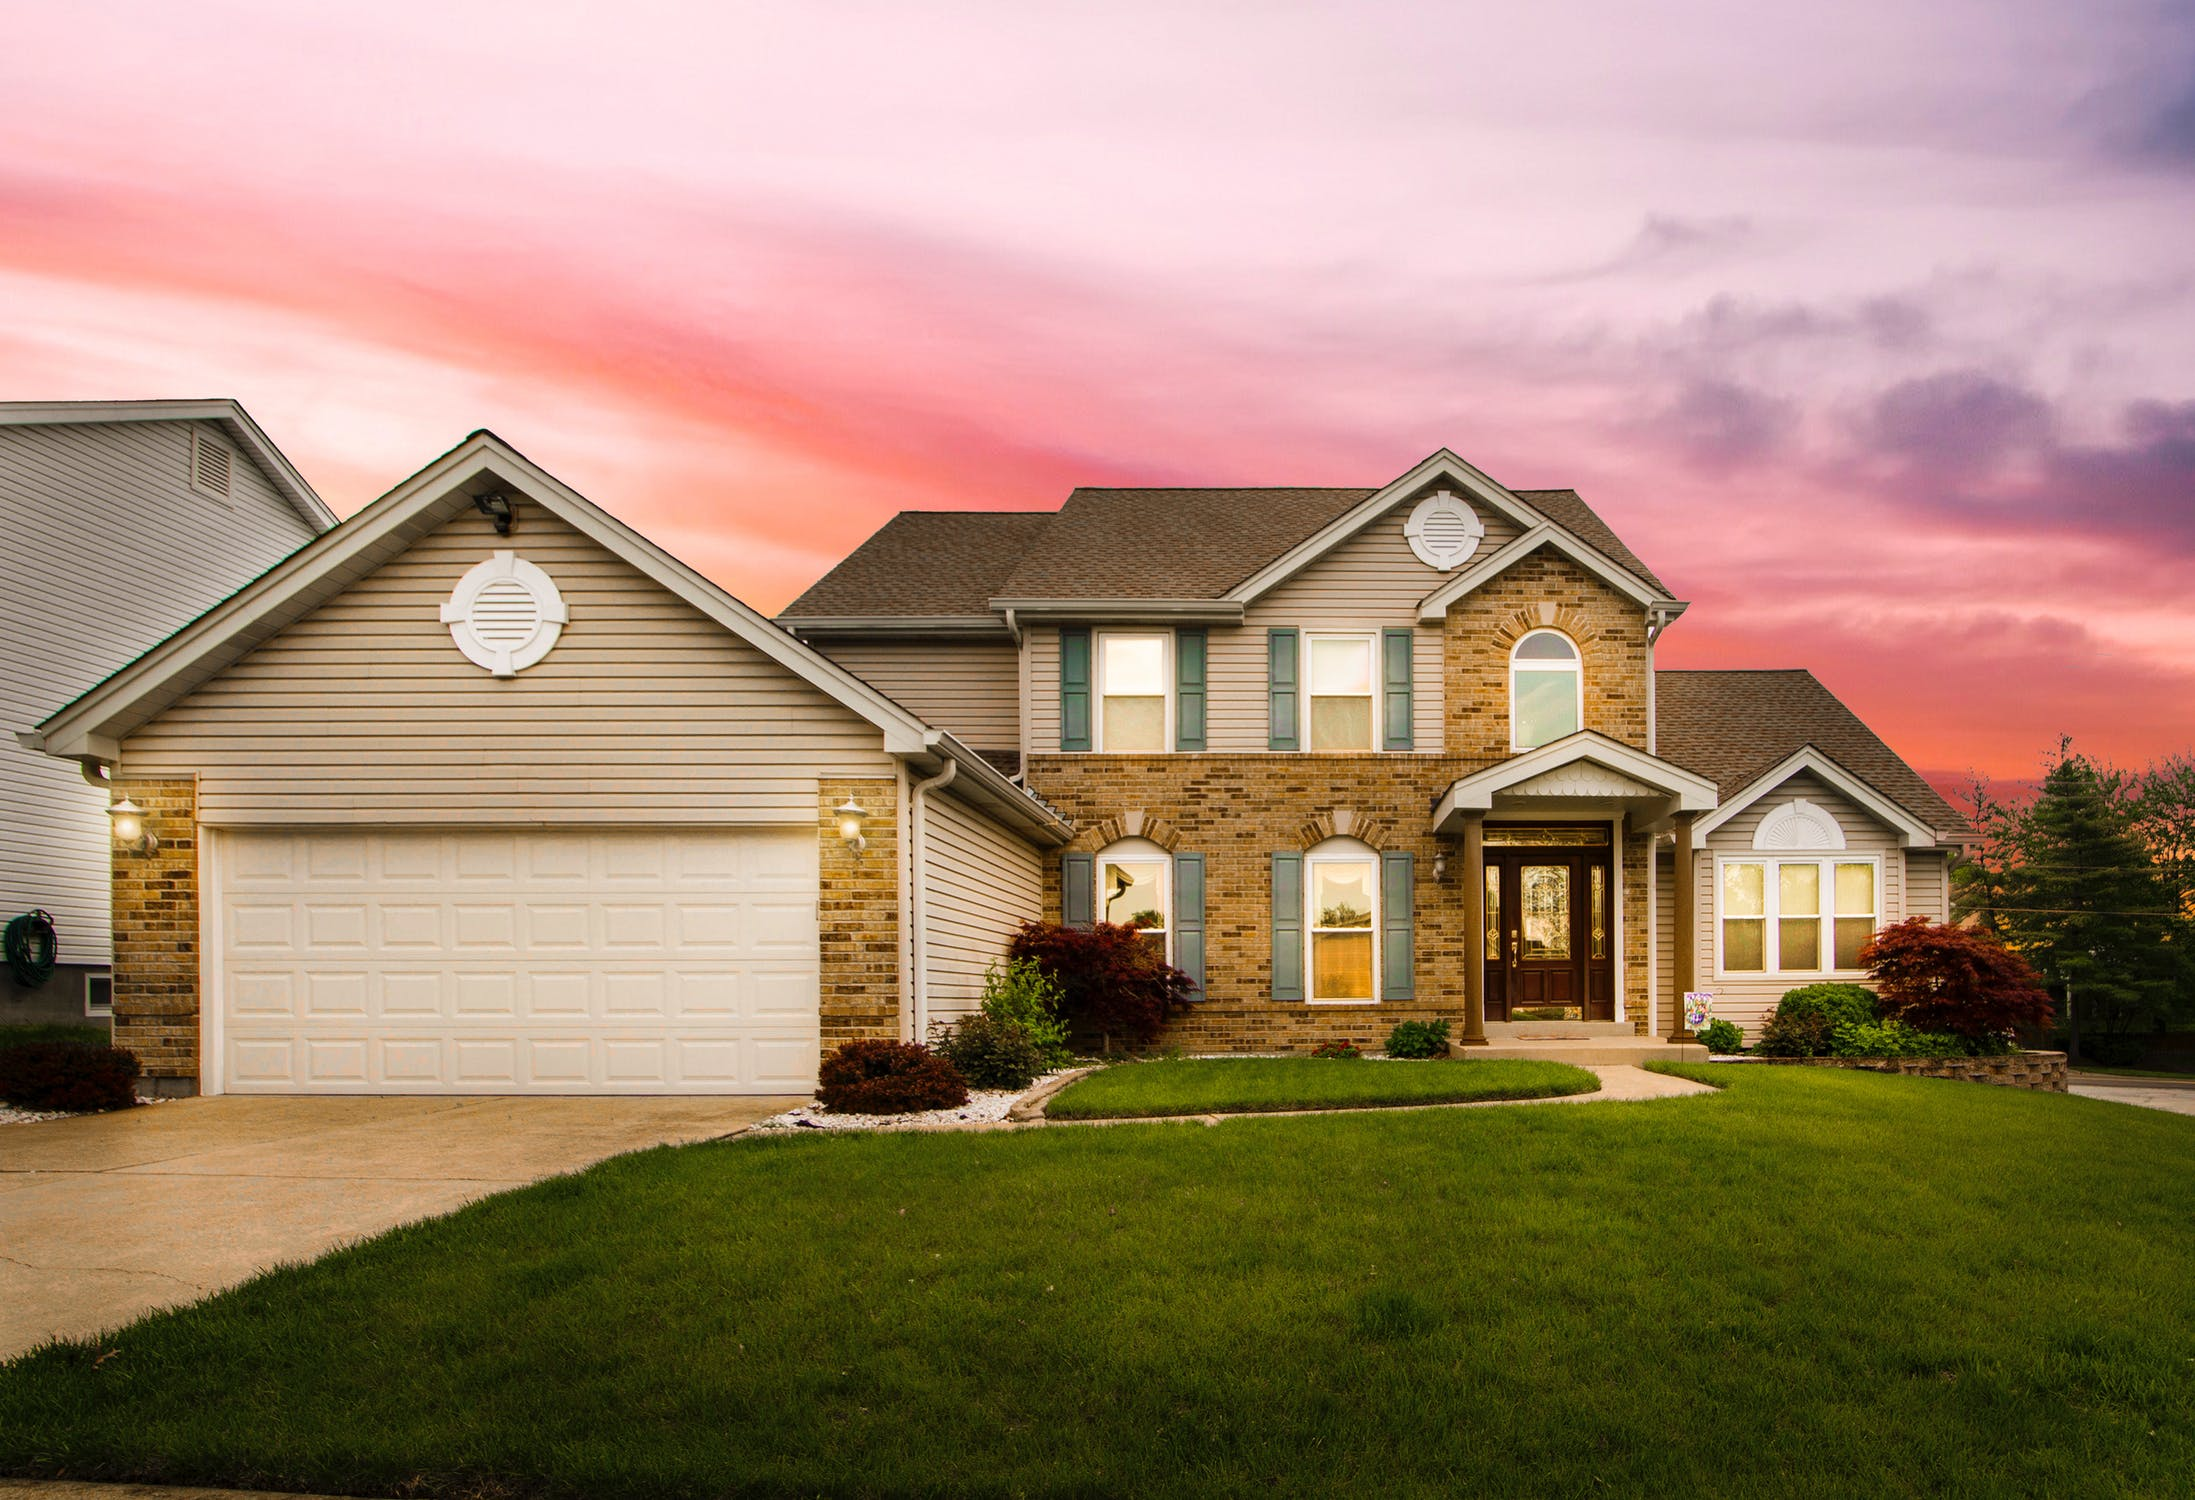 4 Areas to Consider When Looking for a Bigger Home